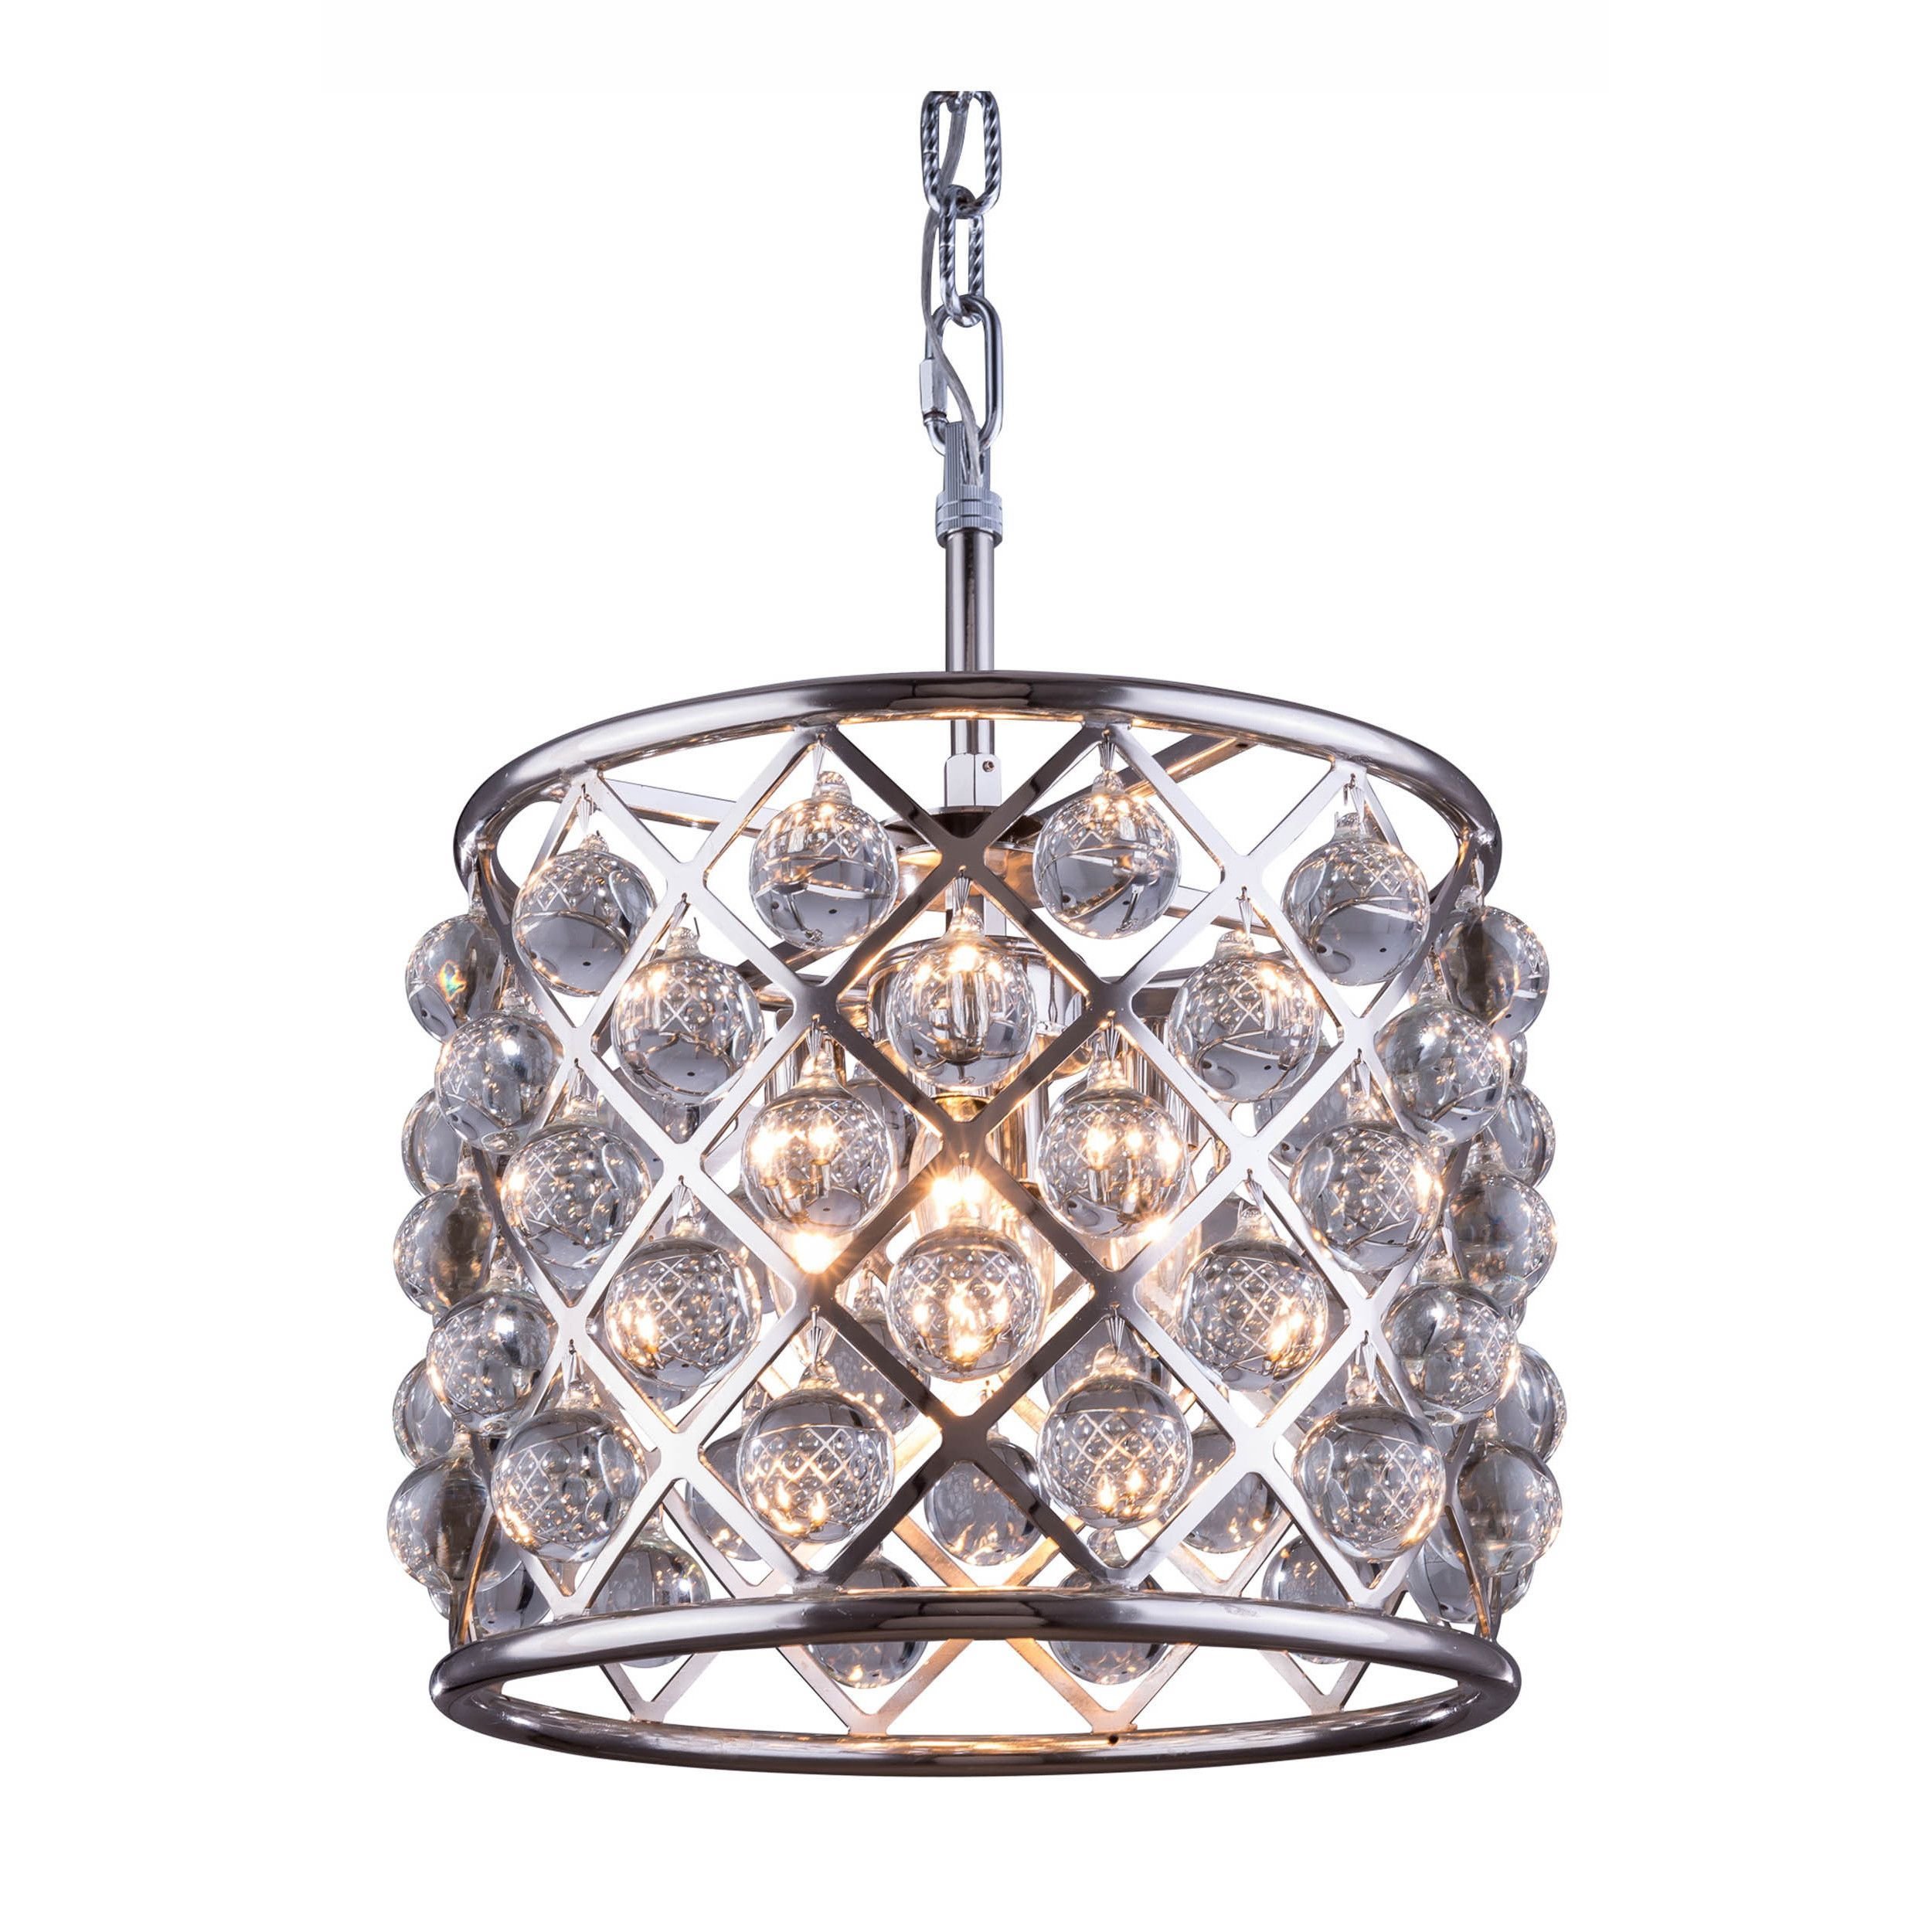 Bombay™ Allston Collection Crystal Trellis Pendant Lamp (Crystal Trellis Pendant Lamp), Nickel (Metal)